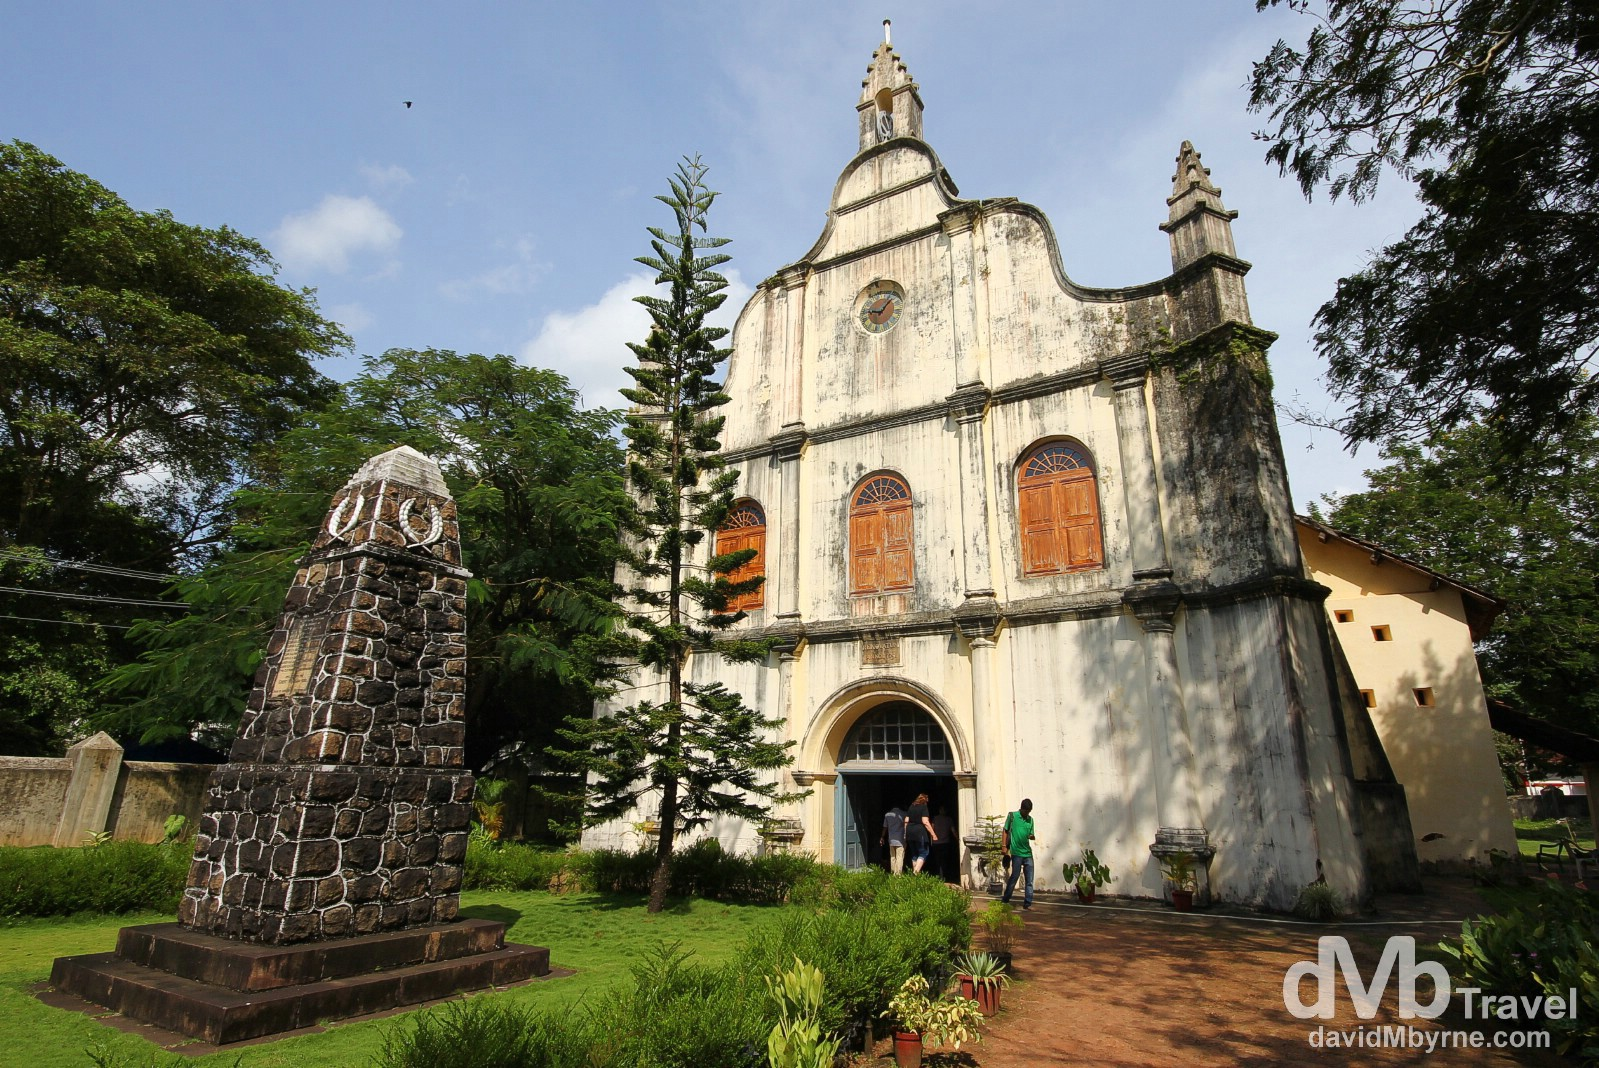 The 1503 AD St. Francis Church, Fort Cochin, Kerala, India. September 18th 2012.